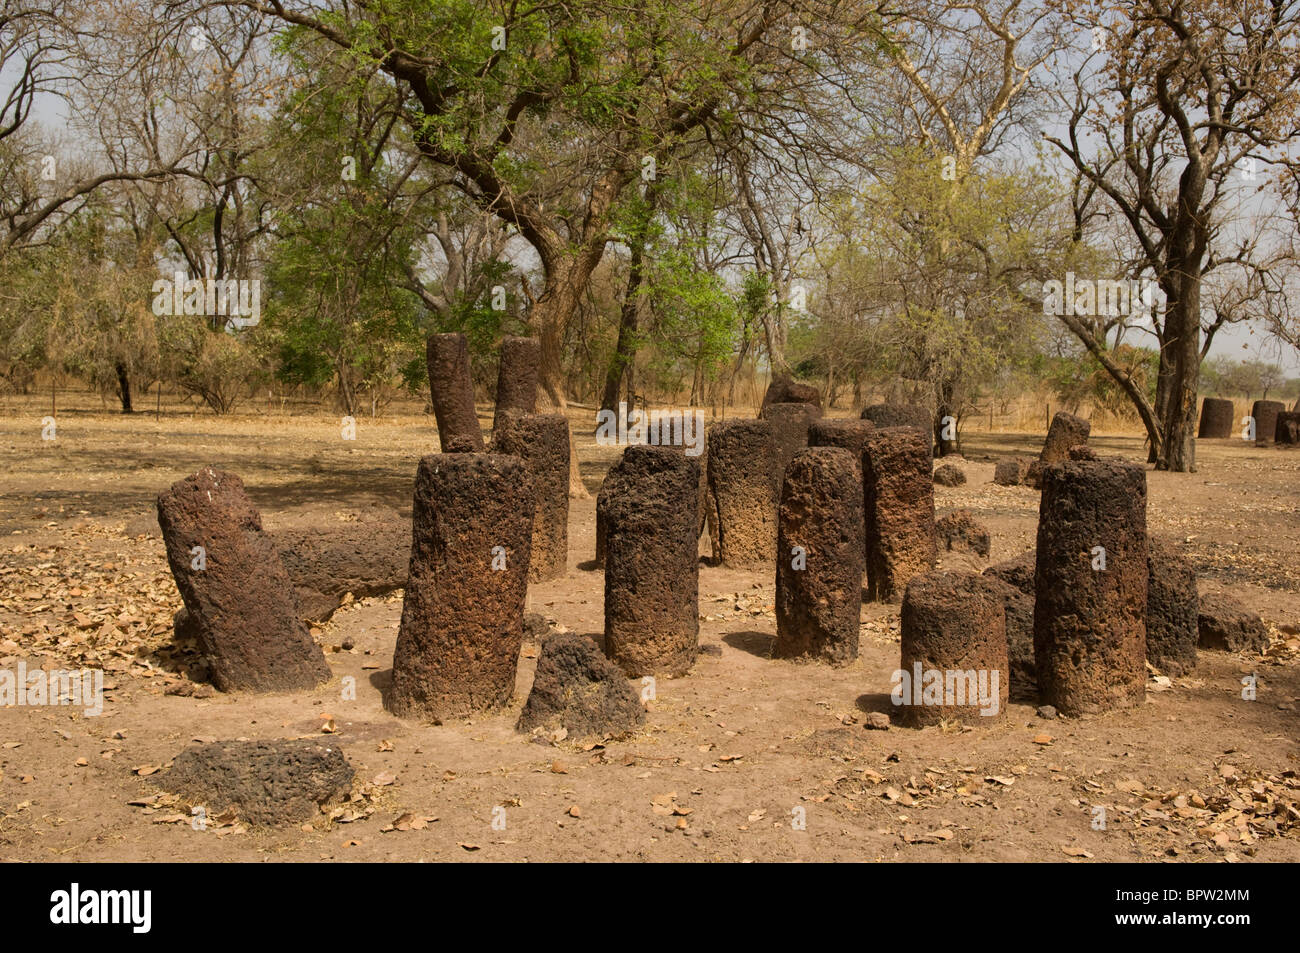 Ker Batch Stone Circles, the Gambia - Stock Image